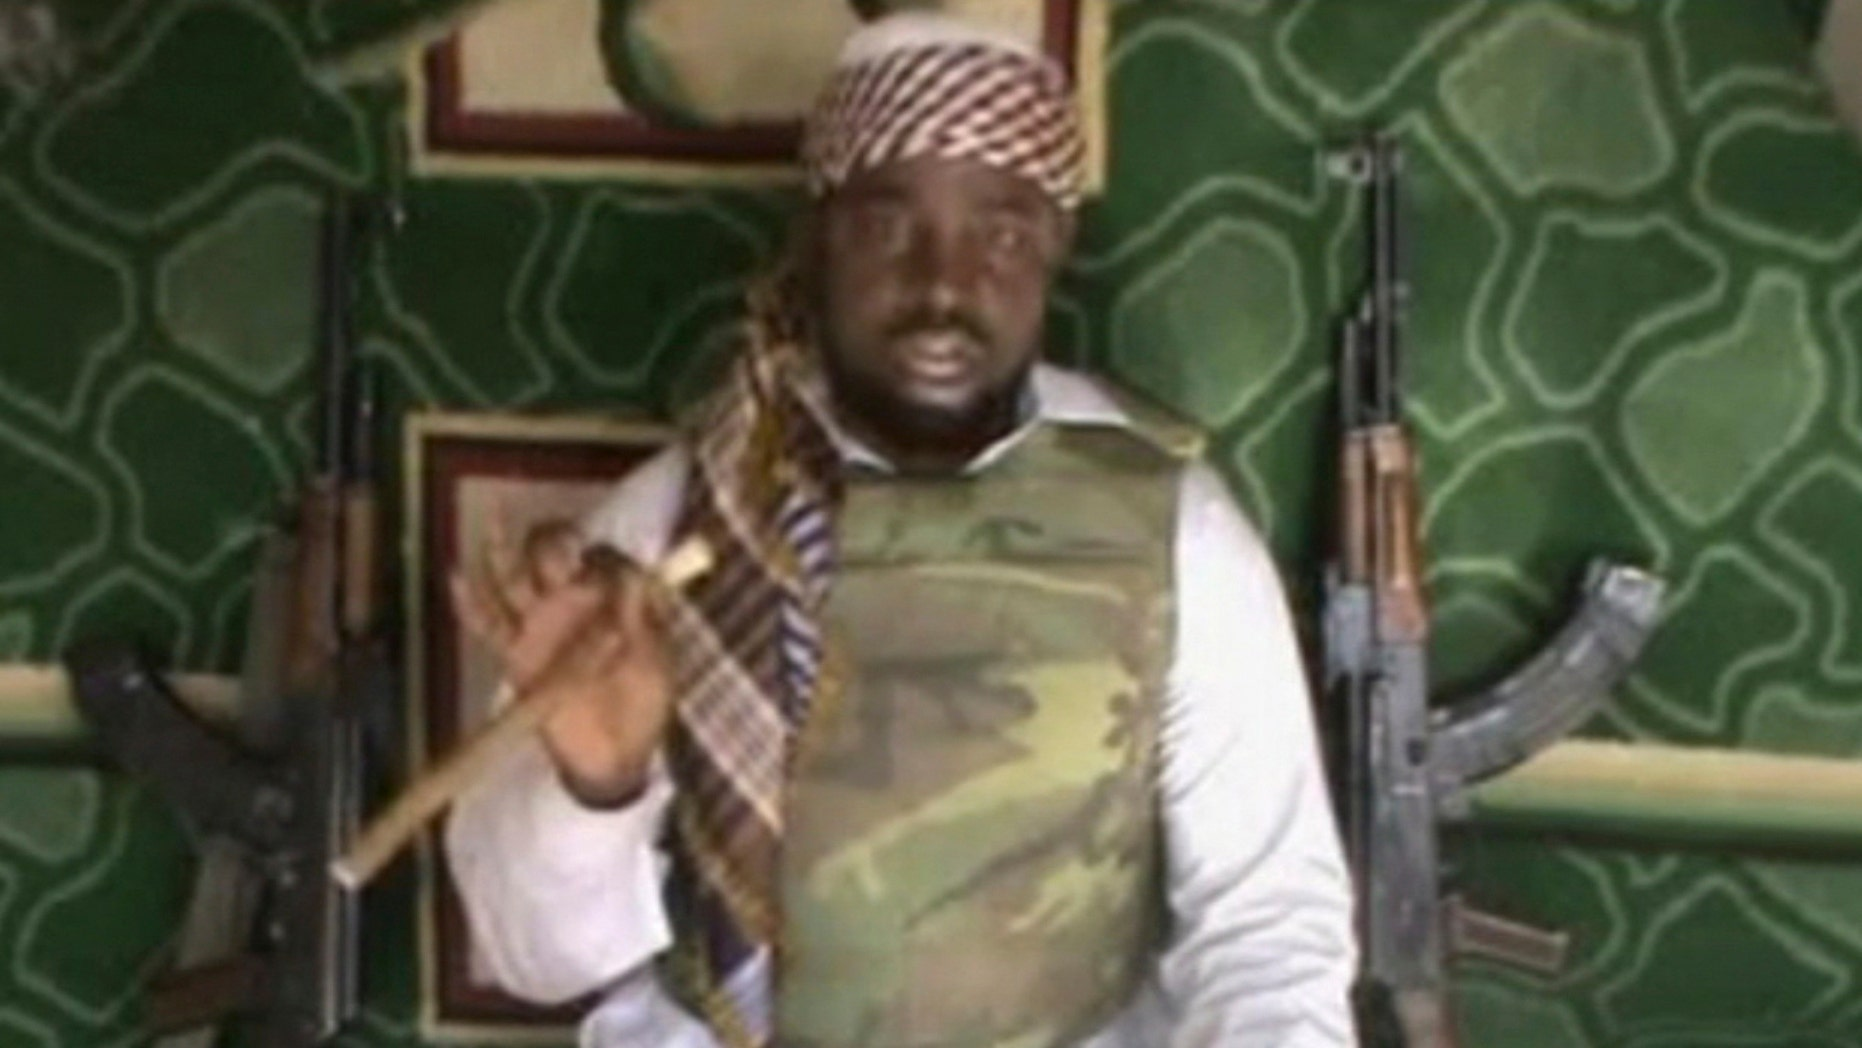 FILE: This file image made available from Wednesday, Jan. 10, 2012,  taken from video posted by Boko Haram sympathizers shows the leader of the radical Islamist sect Imam Abubakar Shekau. The leader of an Islamic uprising in northeastern Nigeria boasts in a new video of a daring attack on military bases in a provincial capital and threatens to attack the United States next, it has been reported on Thursday, Dec. 12, 2013.  Few believe the Boko Haram terrorist network has such capability though there are fears its insurgency could spread to neighboring states. In  his first statement since Washington designated Boko Haram a terrorist network last month, Abubakar Shekau swore at the United States, calling it a prostitute nation of infidels and liars. The United States in July posted a reward of $7 million for information leading to Shekau's arrest. (AP Photo, File ) THE ASSOCIATED PRESS CANNOT INDEPENDENTLY VERIFY THE CONTENT, DATE, LOCATION OR AUTHENTICITY OF THIS MATERIAL